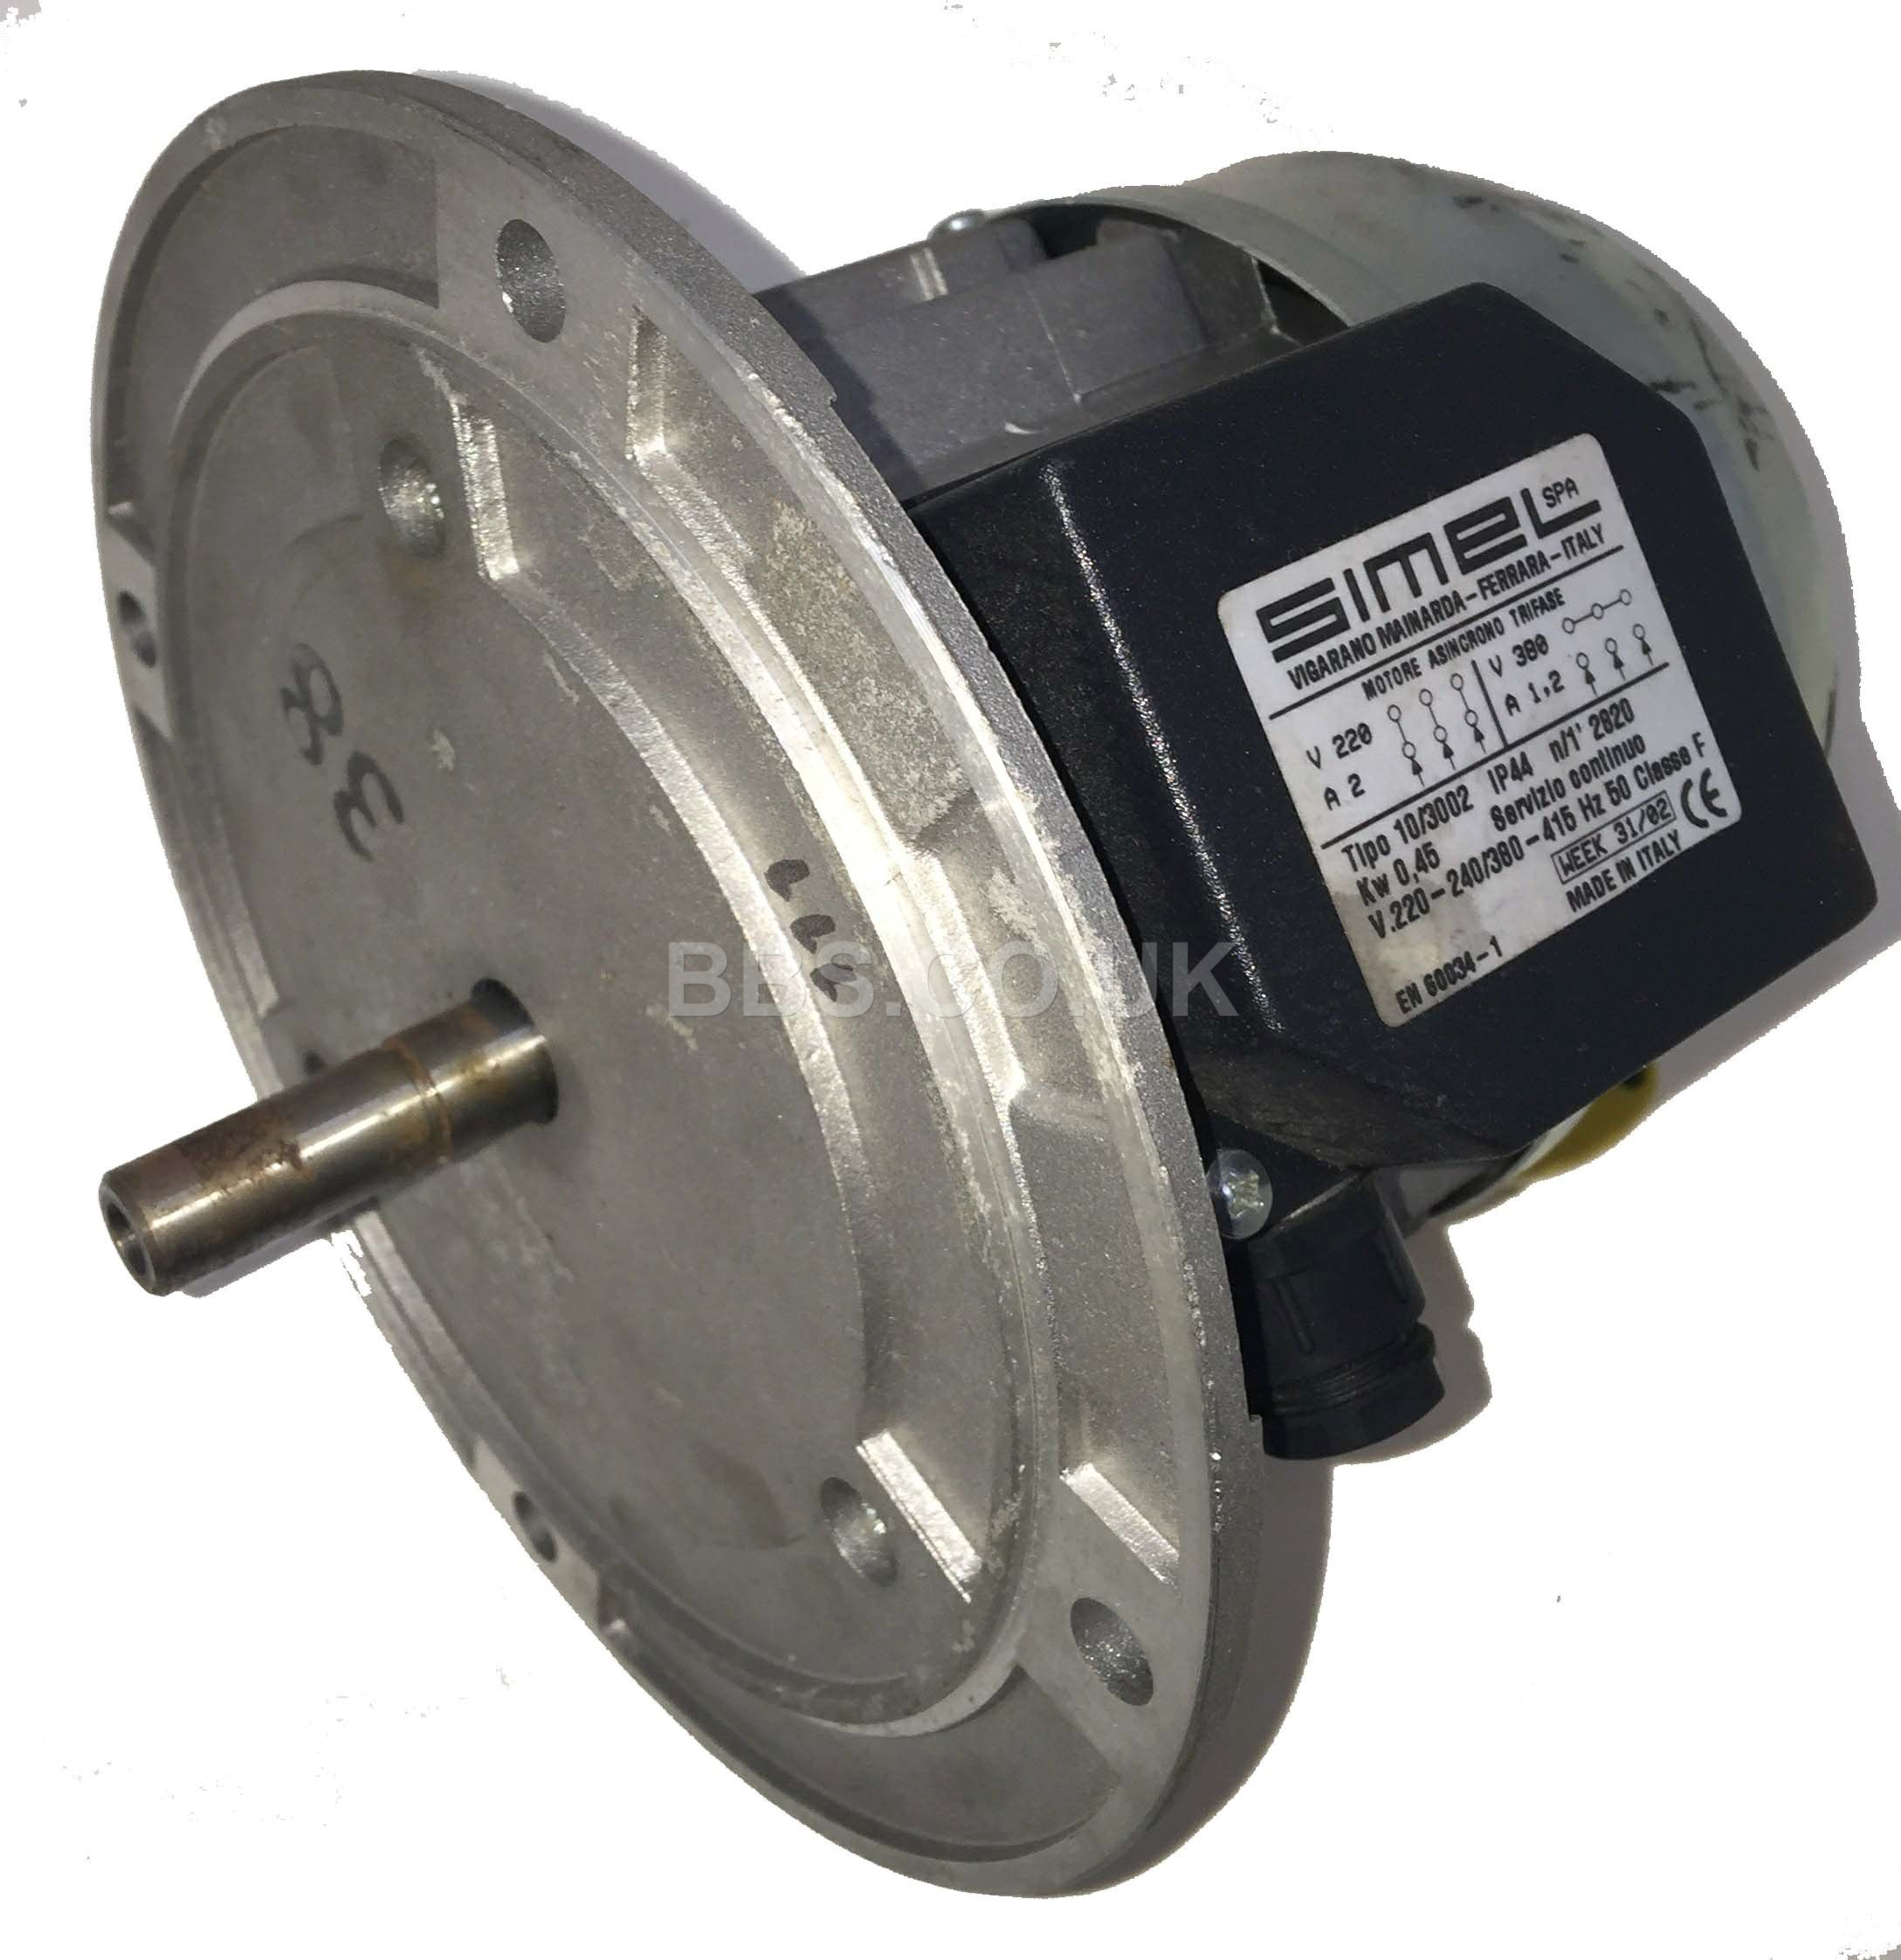 Riello Motor RS38 & RL38 3PH 415v